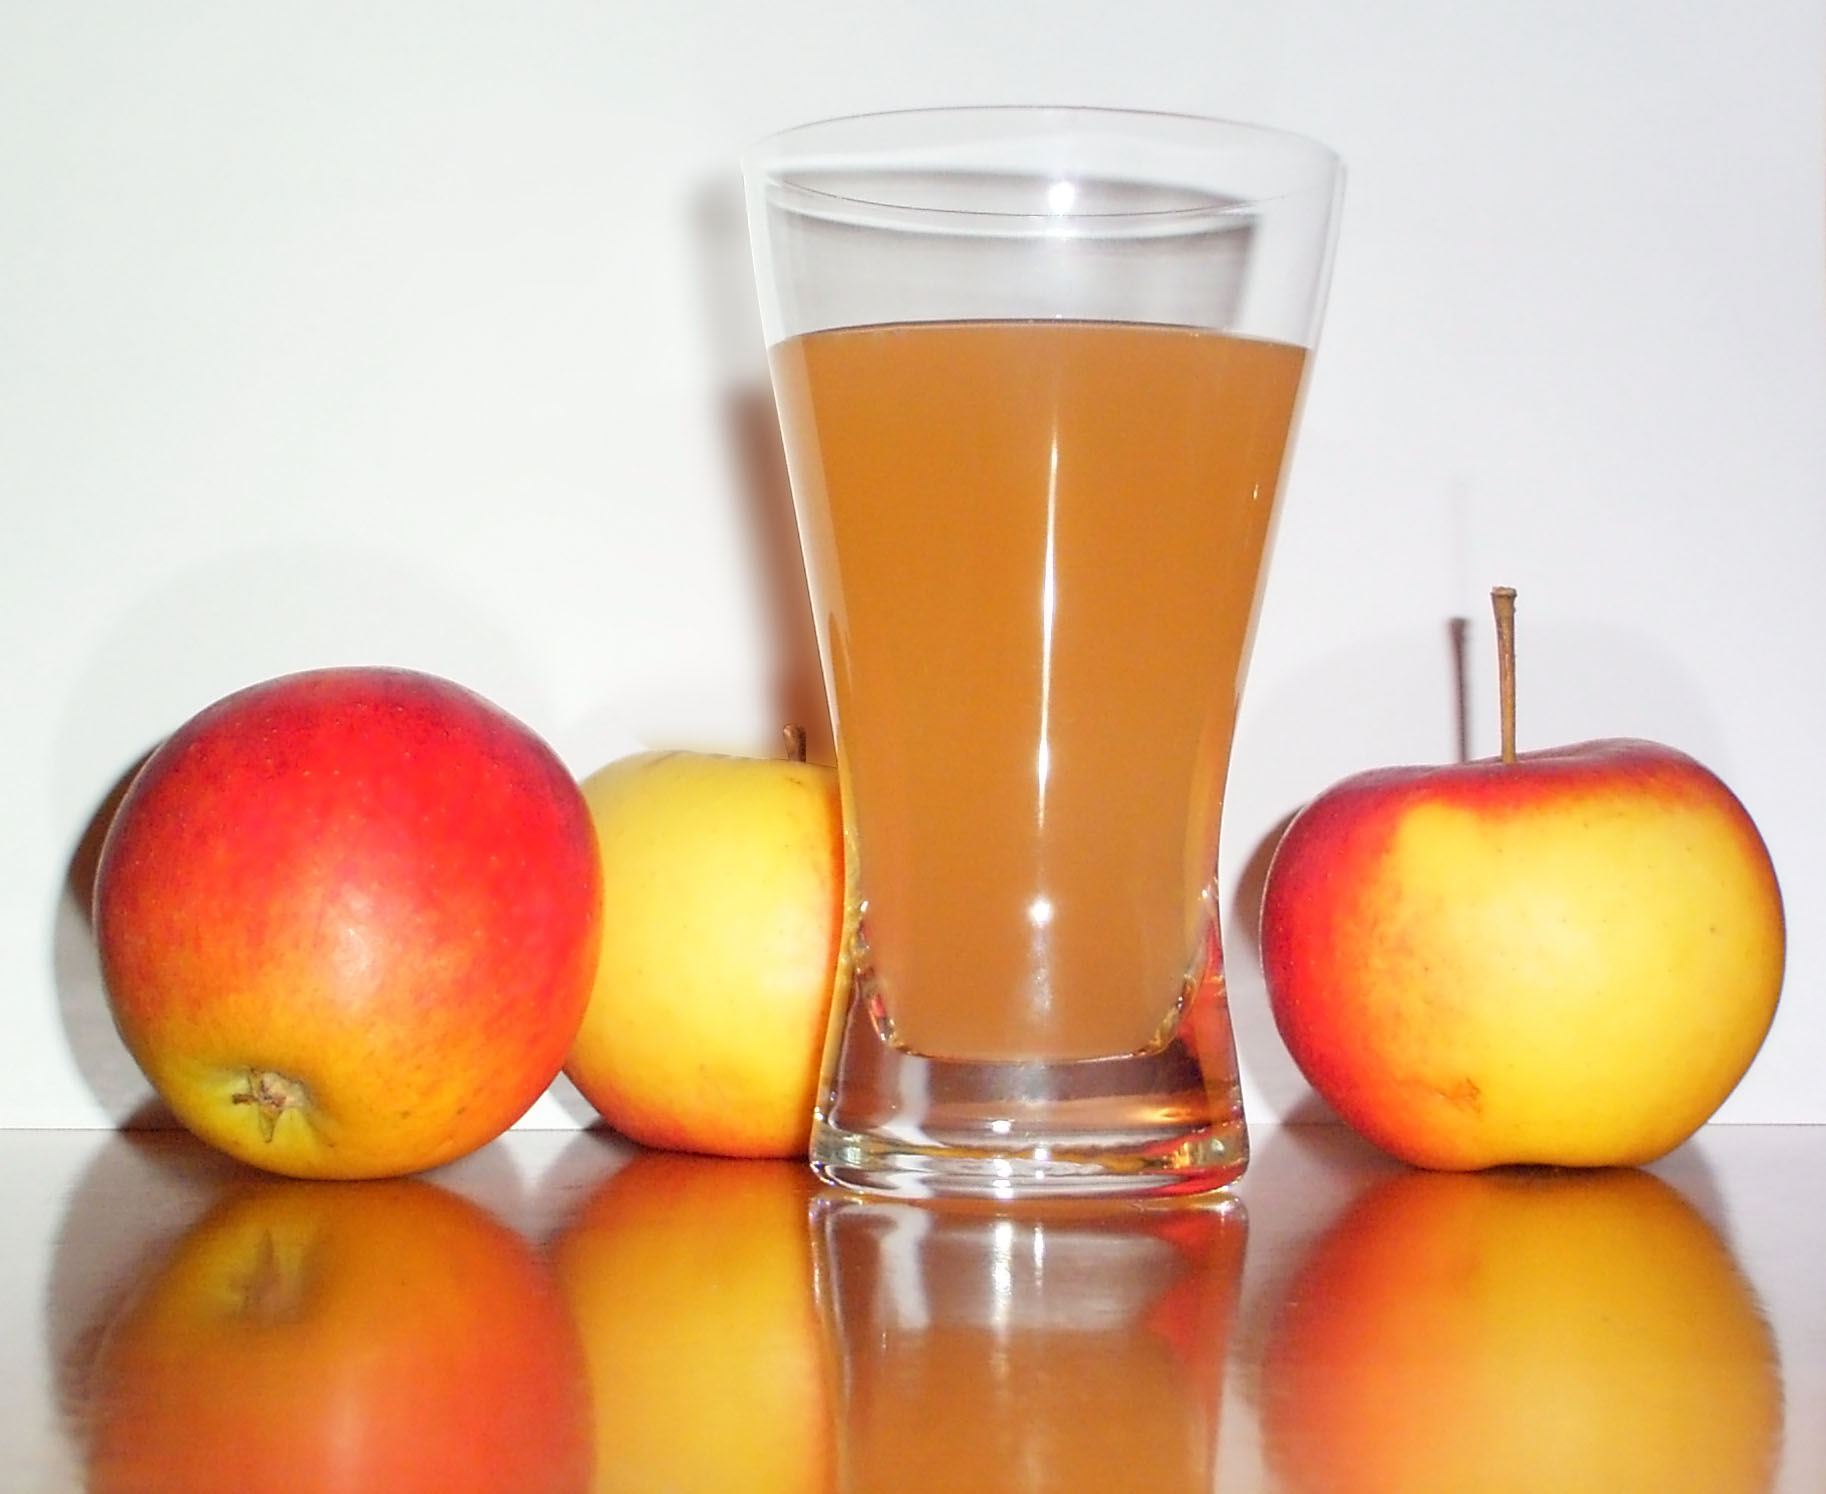 Apple_juice_with_3apples[1]